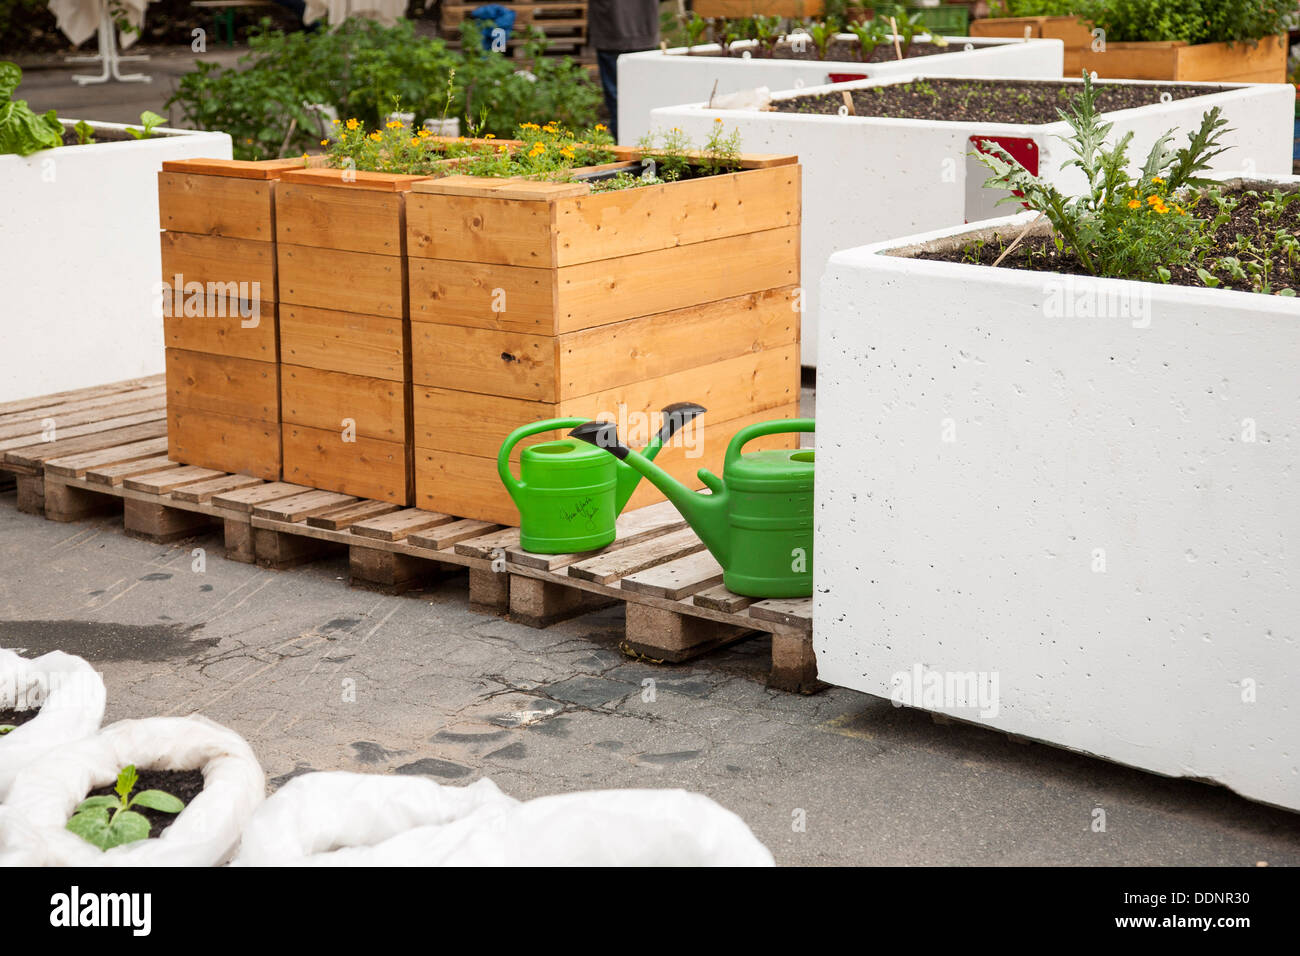 Jardins urbains, Frankfurt am Main, Hesse, Germany, Europe Photo Stock